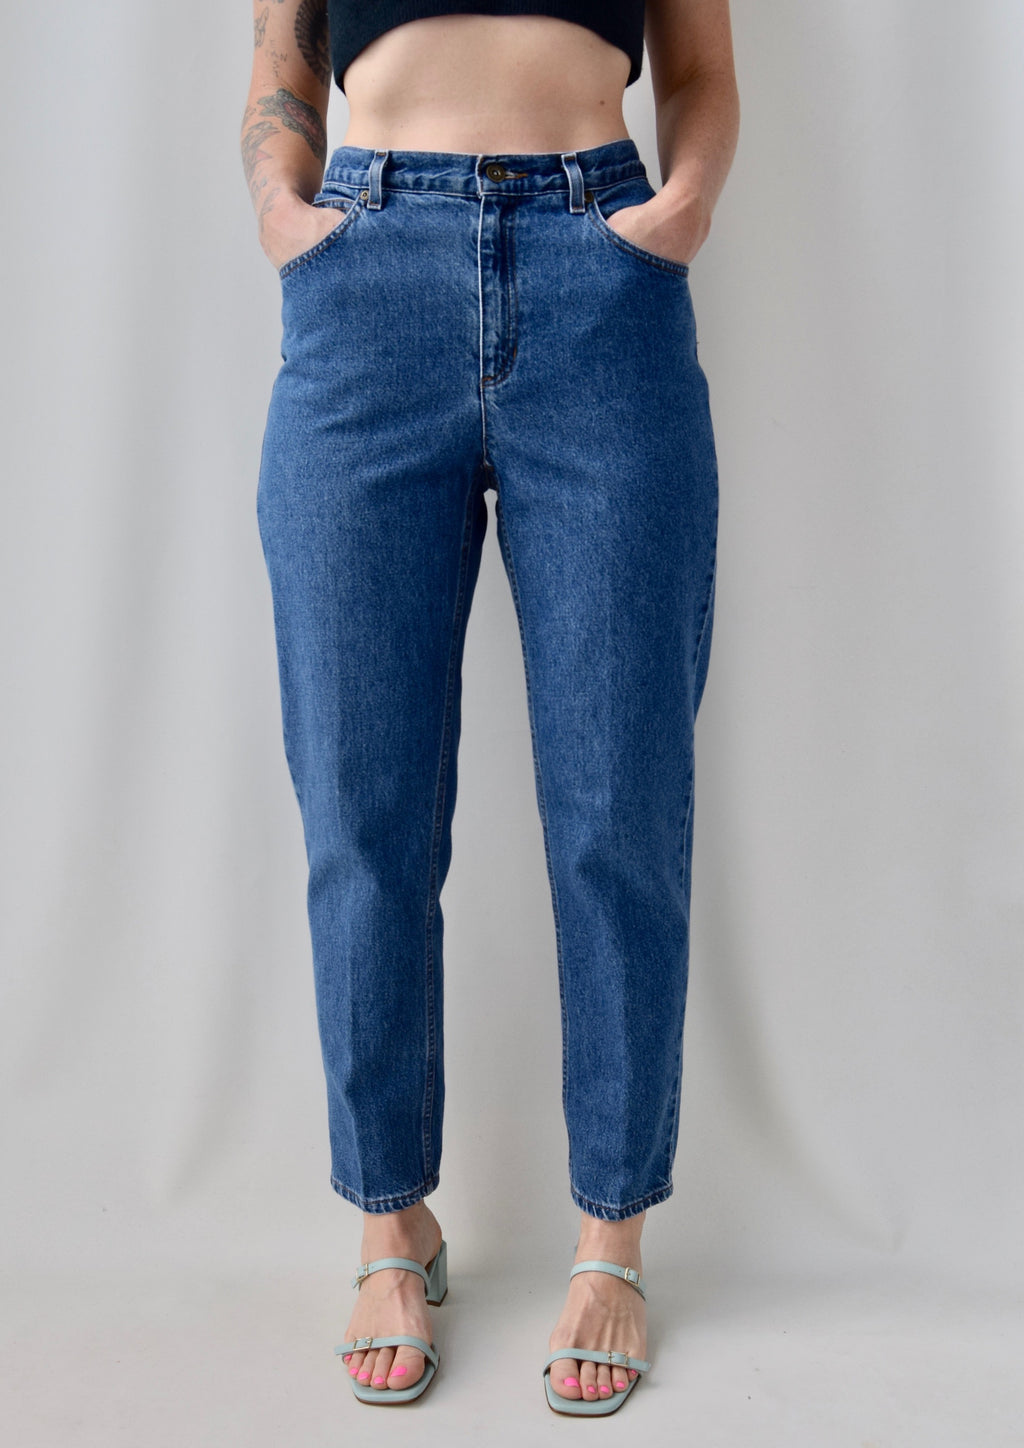 Vintage Lizwear Medium Wash Jeans